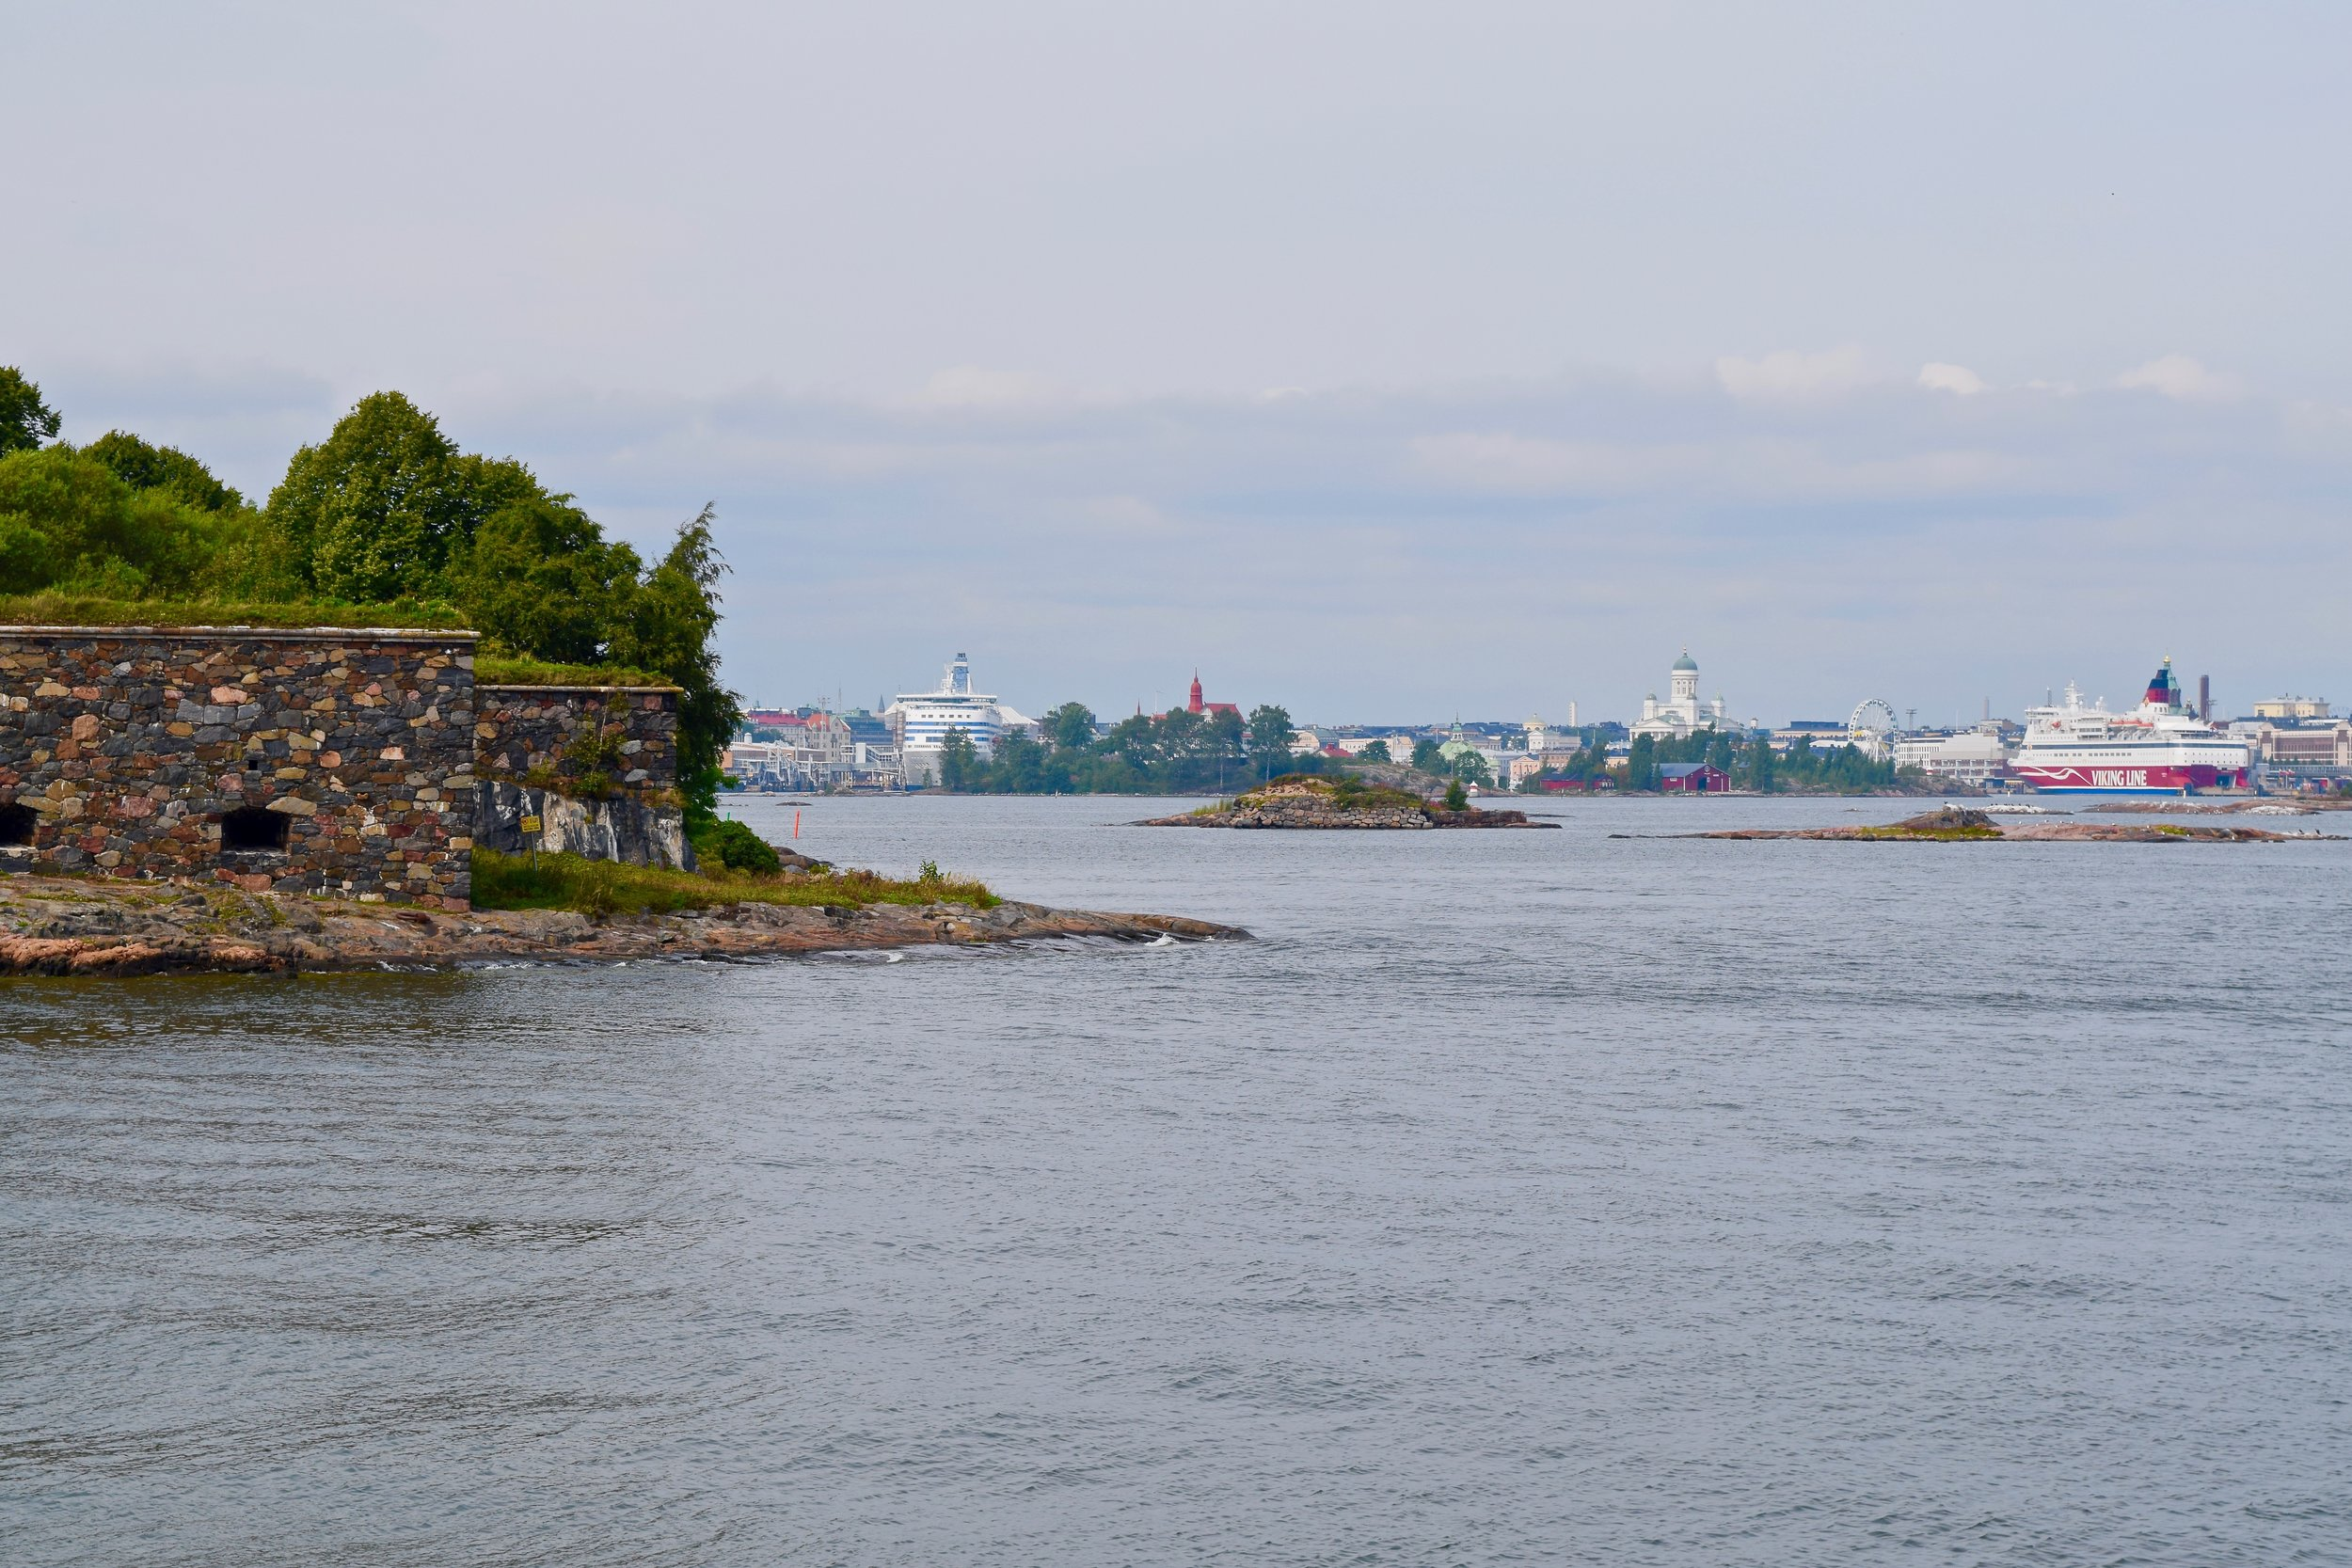 View of Suomenlinna and Helsinki